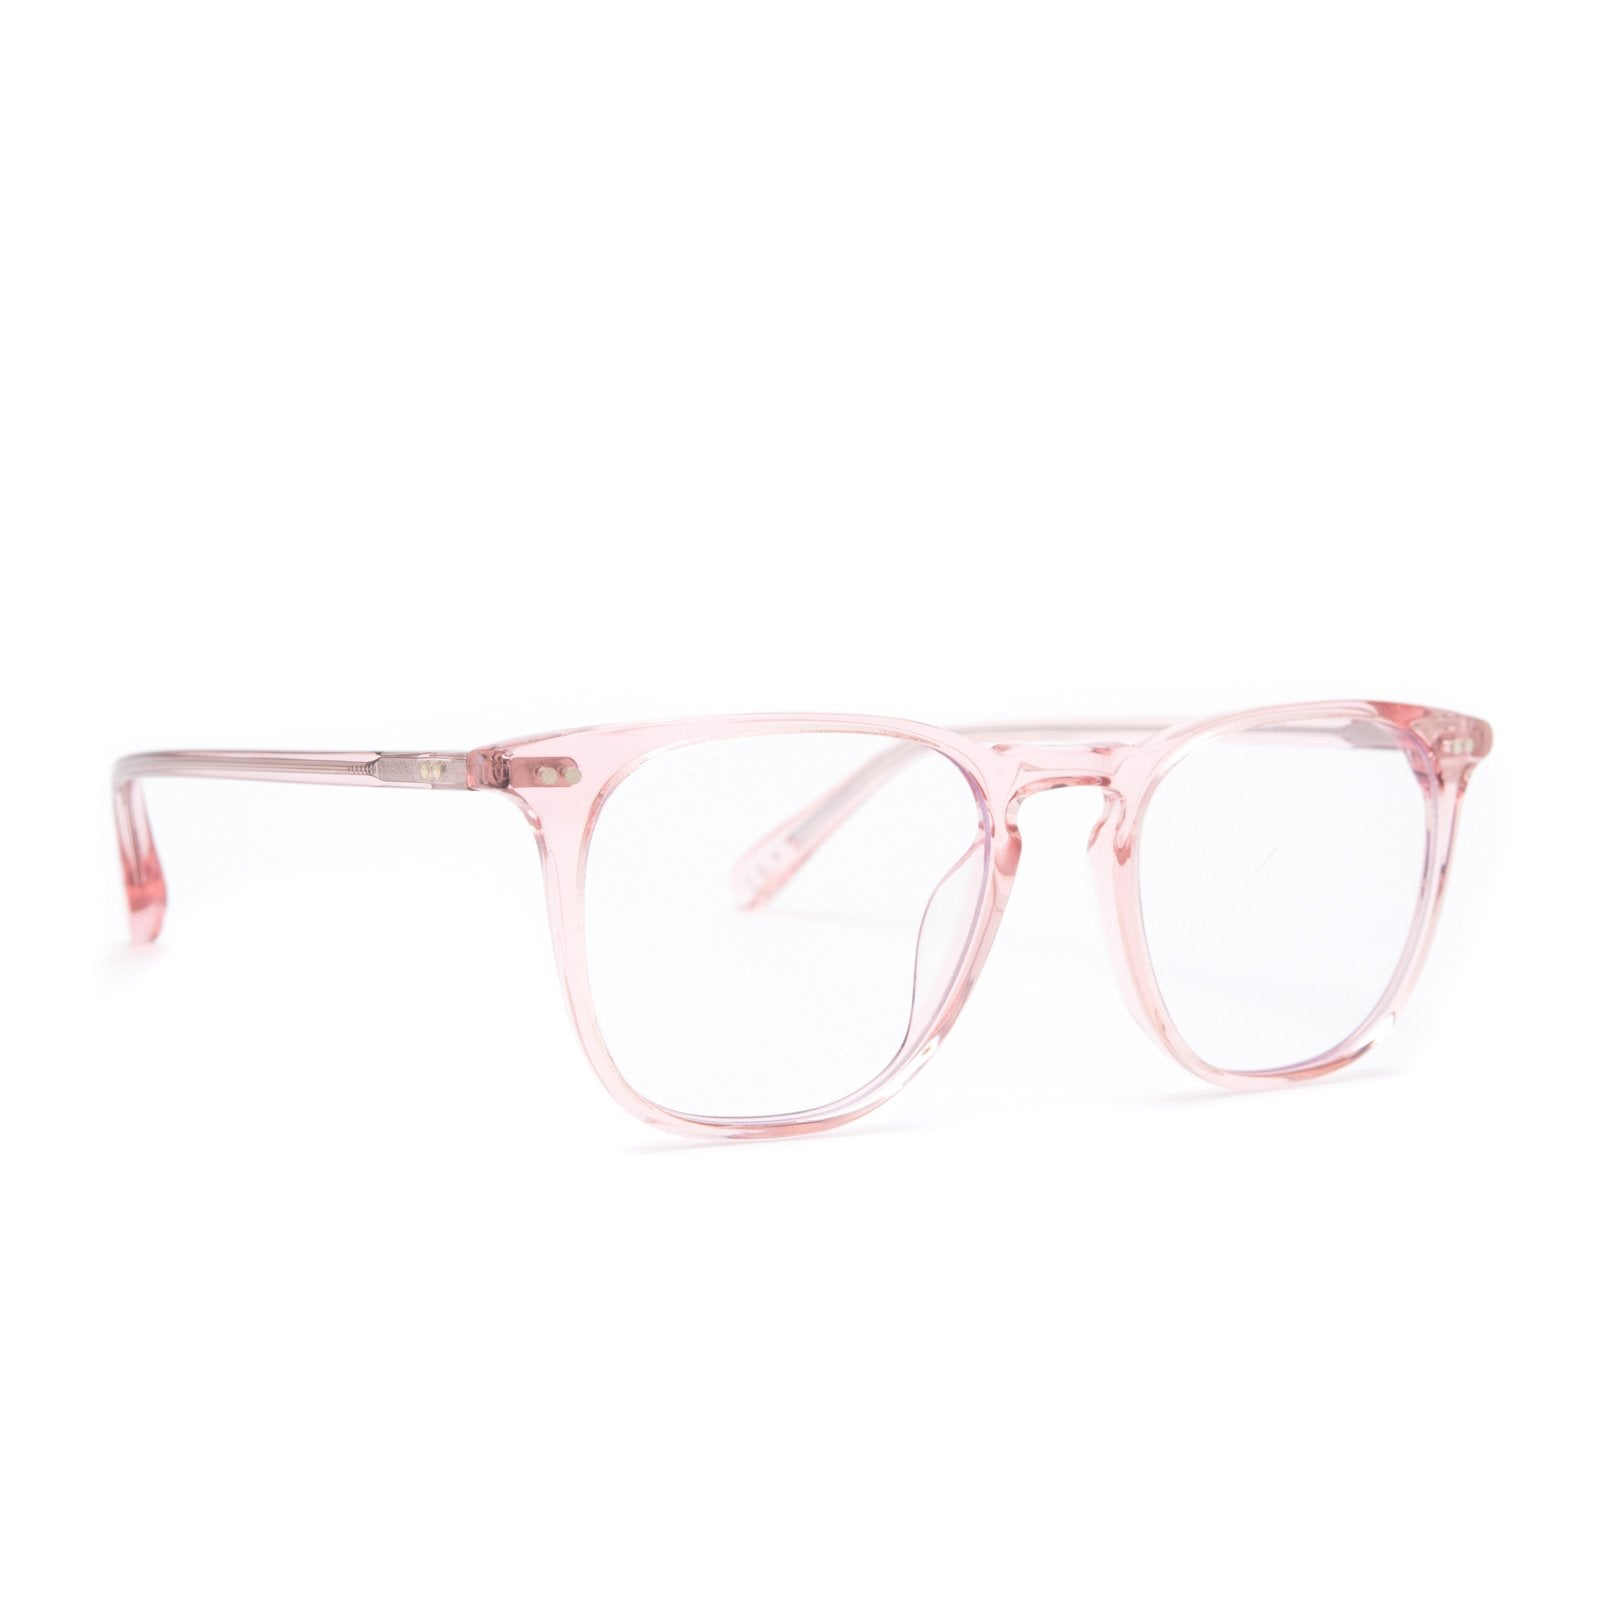 Maxwell prescription glasses with light pink frames angle view